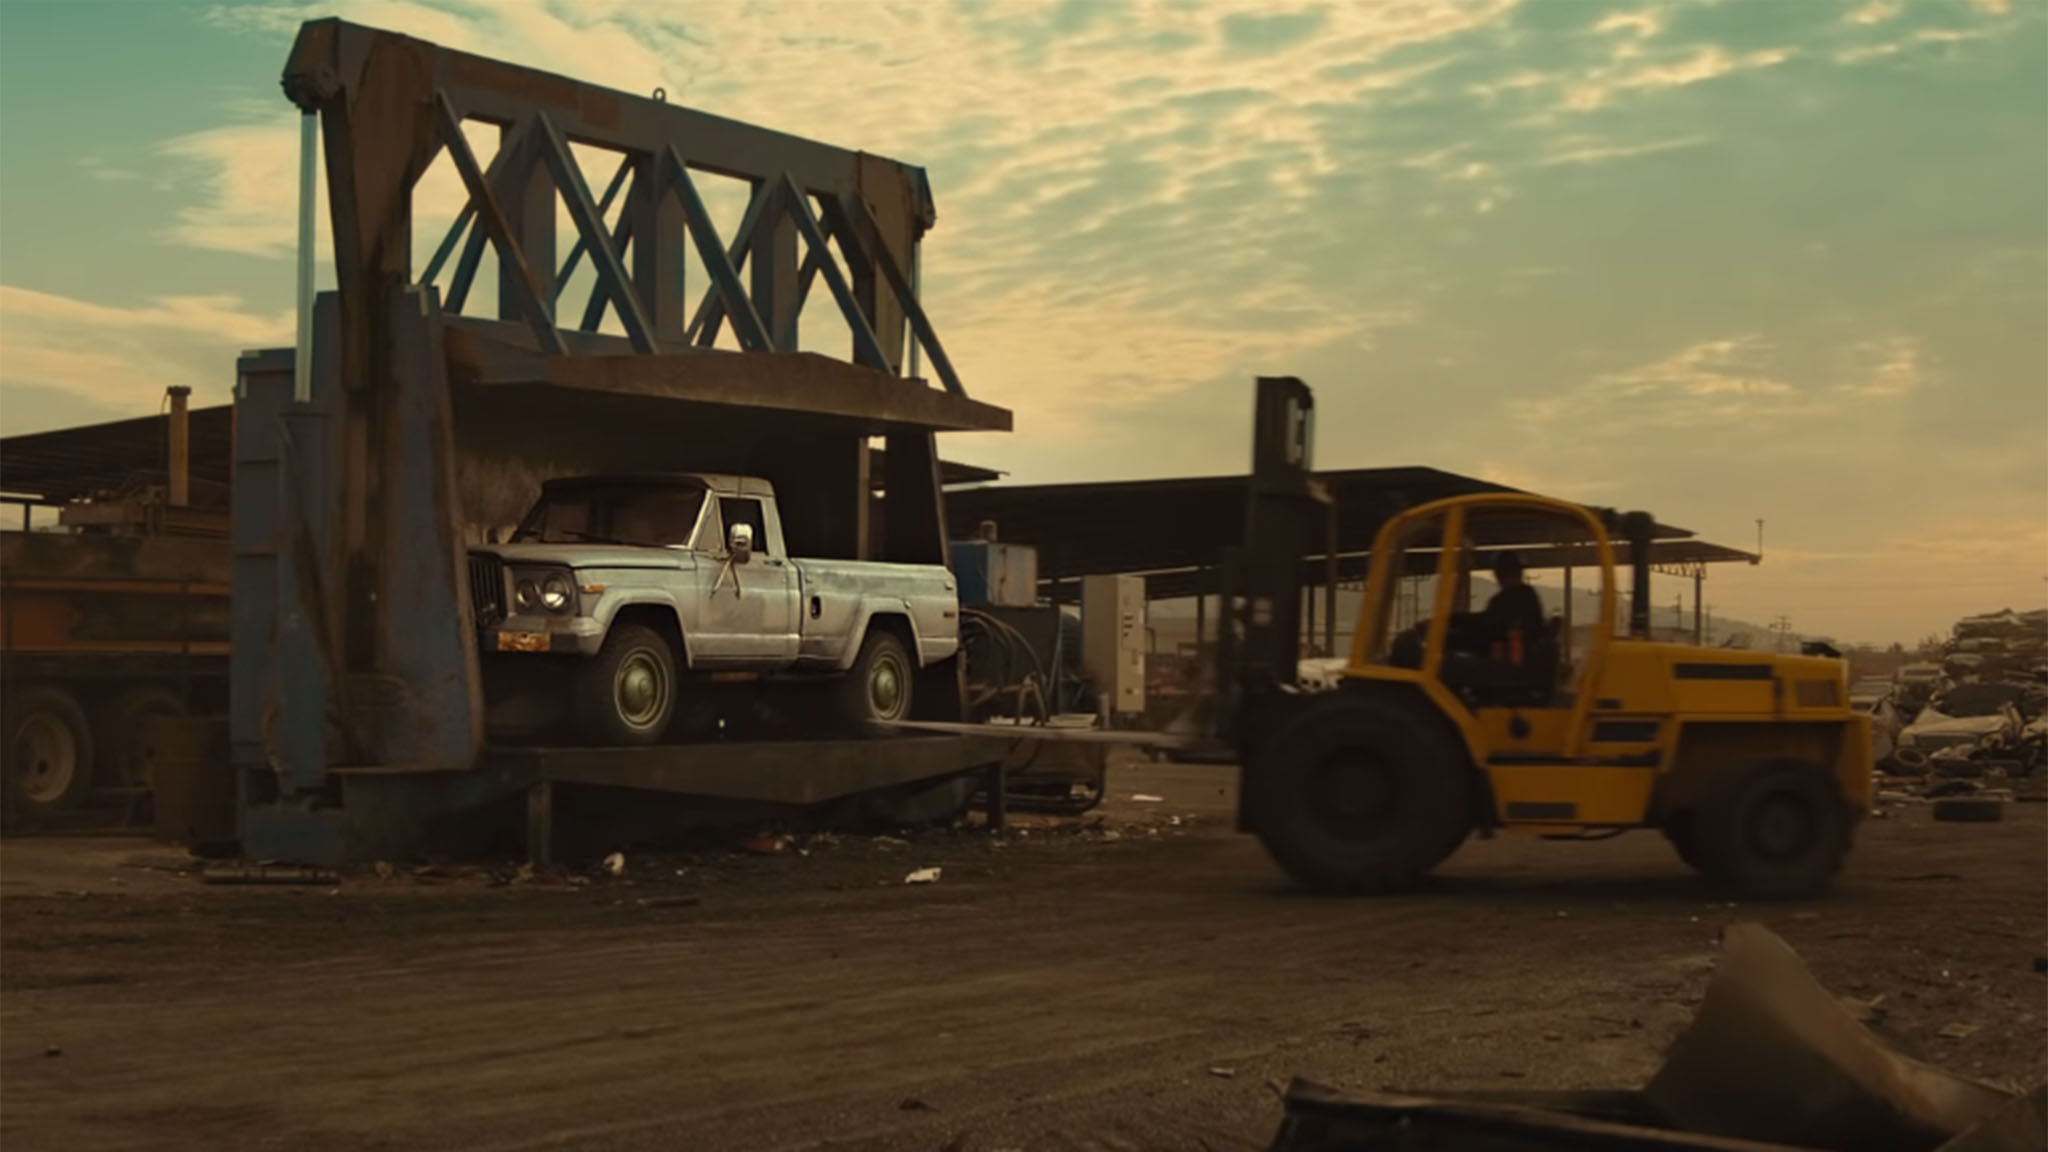 Best Super Bowl Commercials 2020 Jeep's 2020 Gladiator Super Bowl Commercial Makes Us Cry